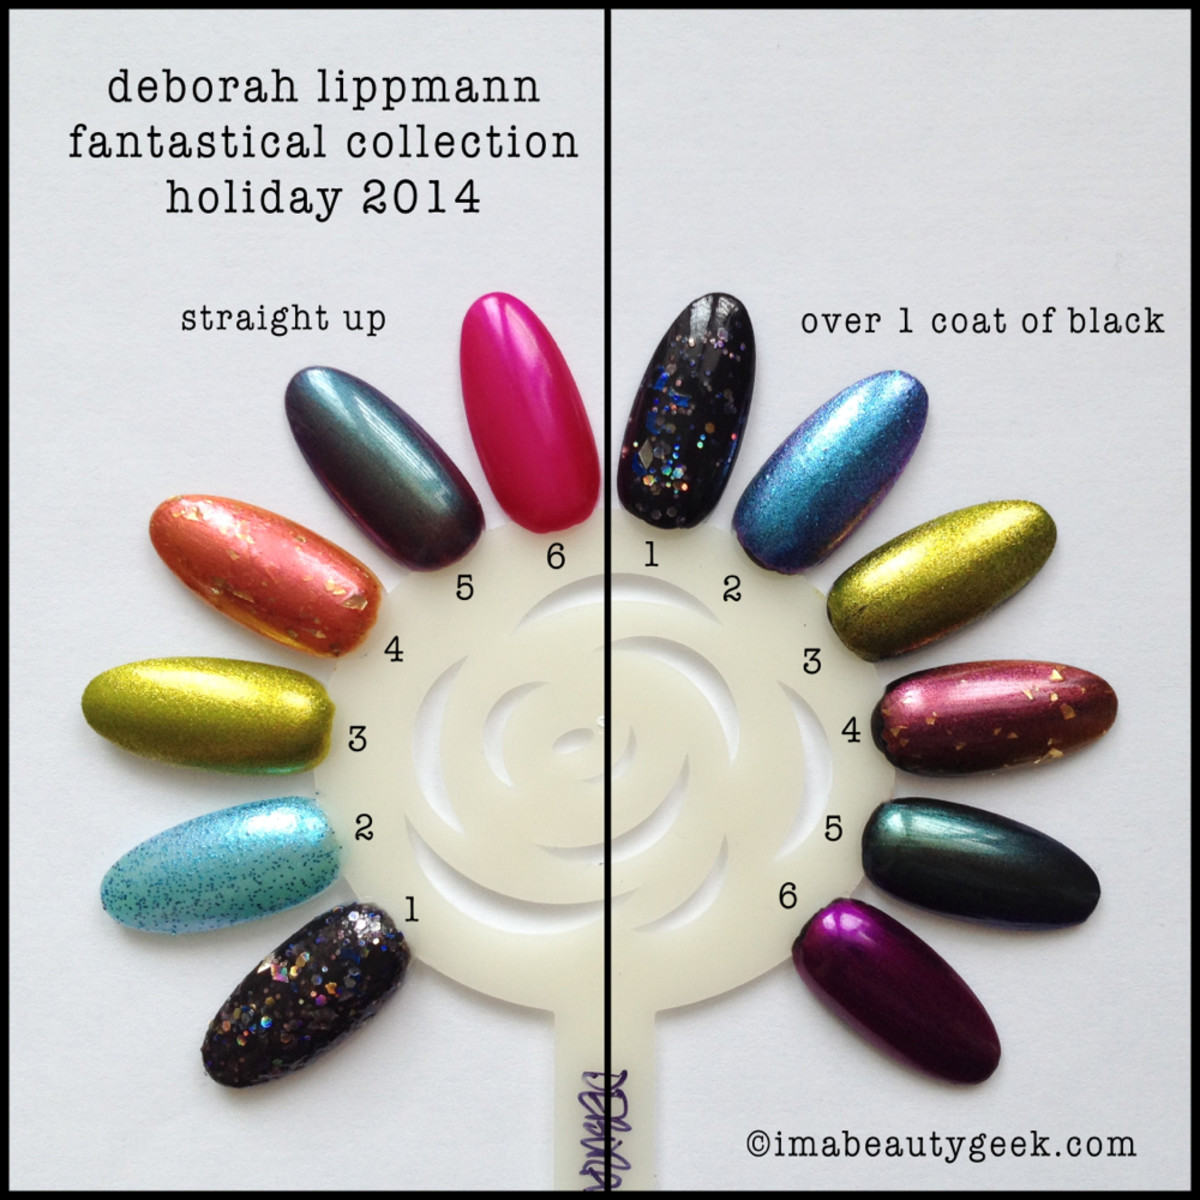 Deborah Lippmann Fantastical Holiday 2014 Neat and Over Black